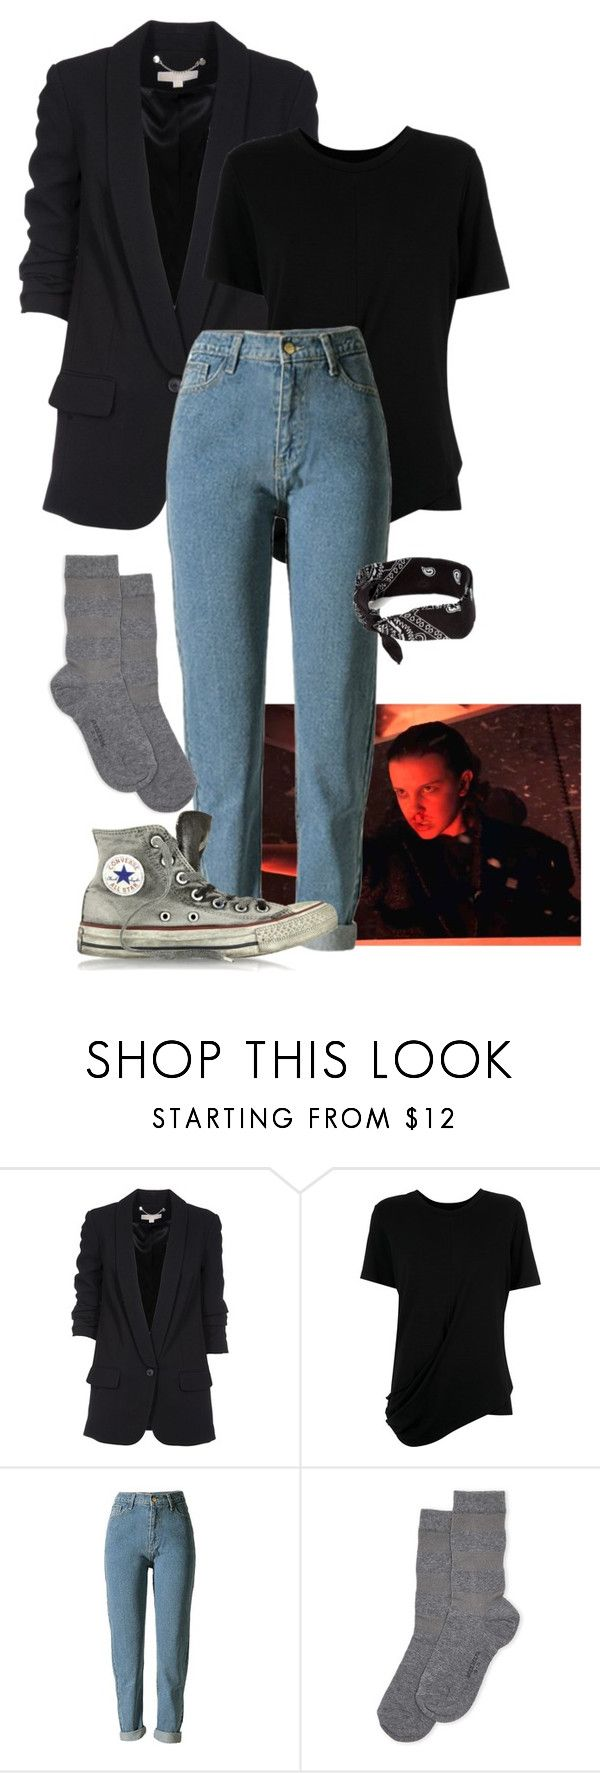 """""""Punk Eleven -Stranger Things 2"""" by nikki-m-f ❤ liked on Polyvore featuring Michael Kors, Uma 